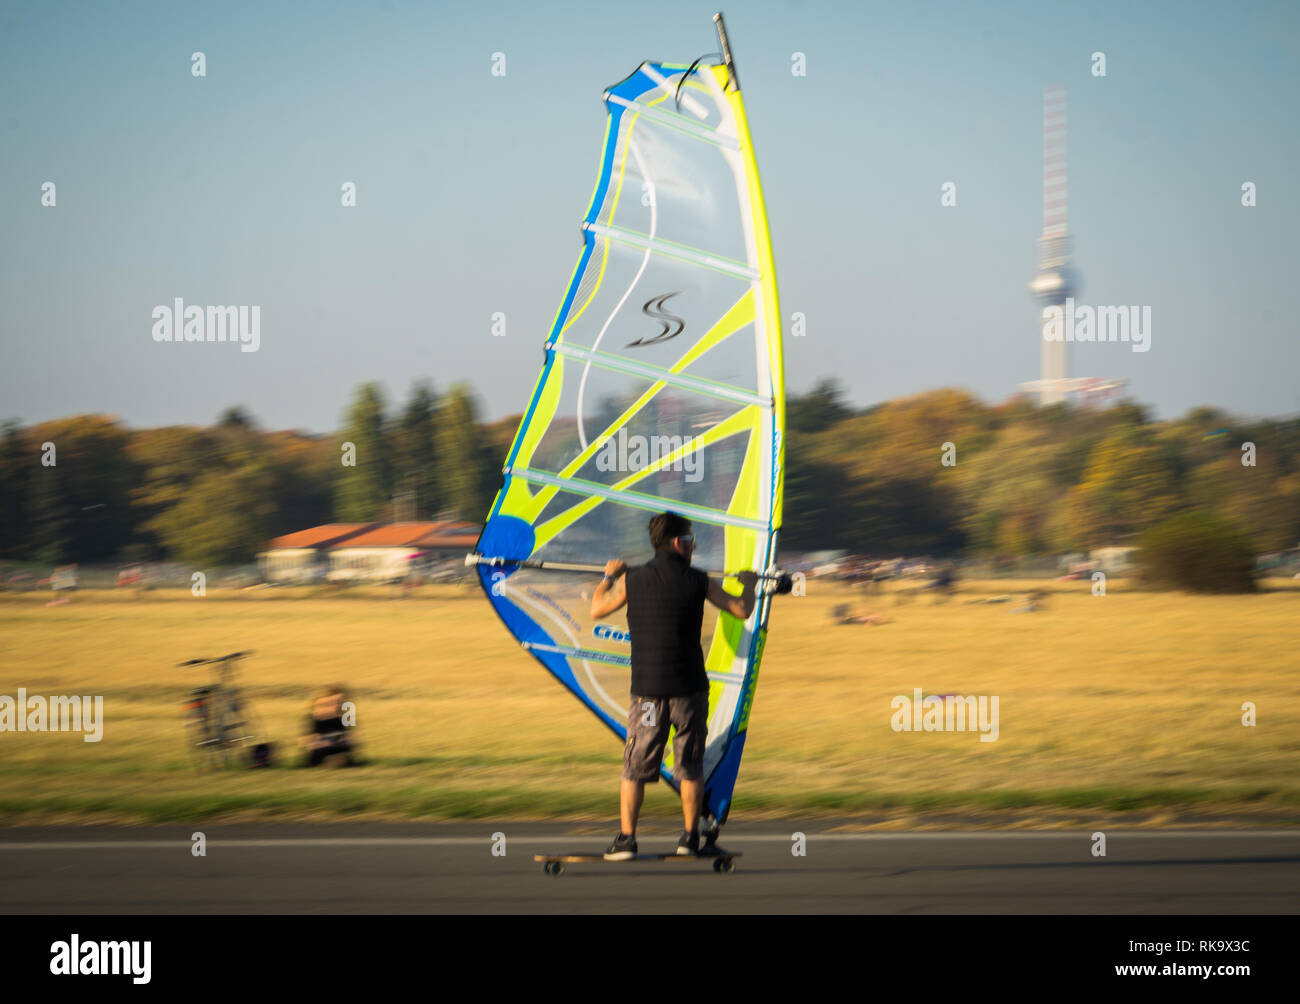 Berlin Tempelhofer Feld Windsurfer - Stock Image